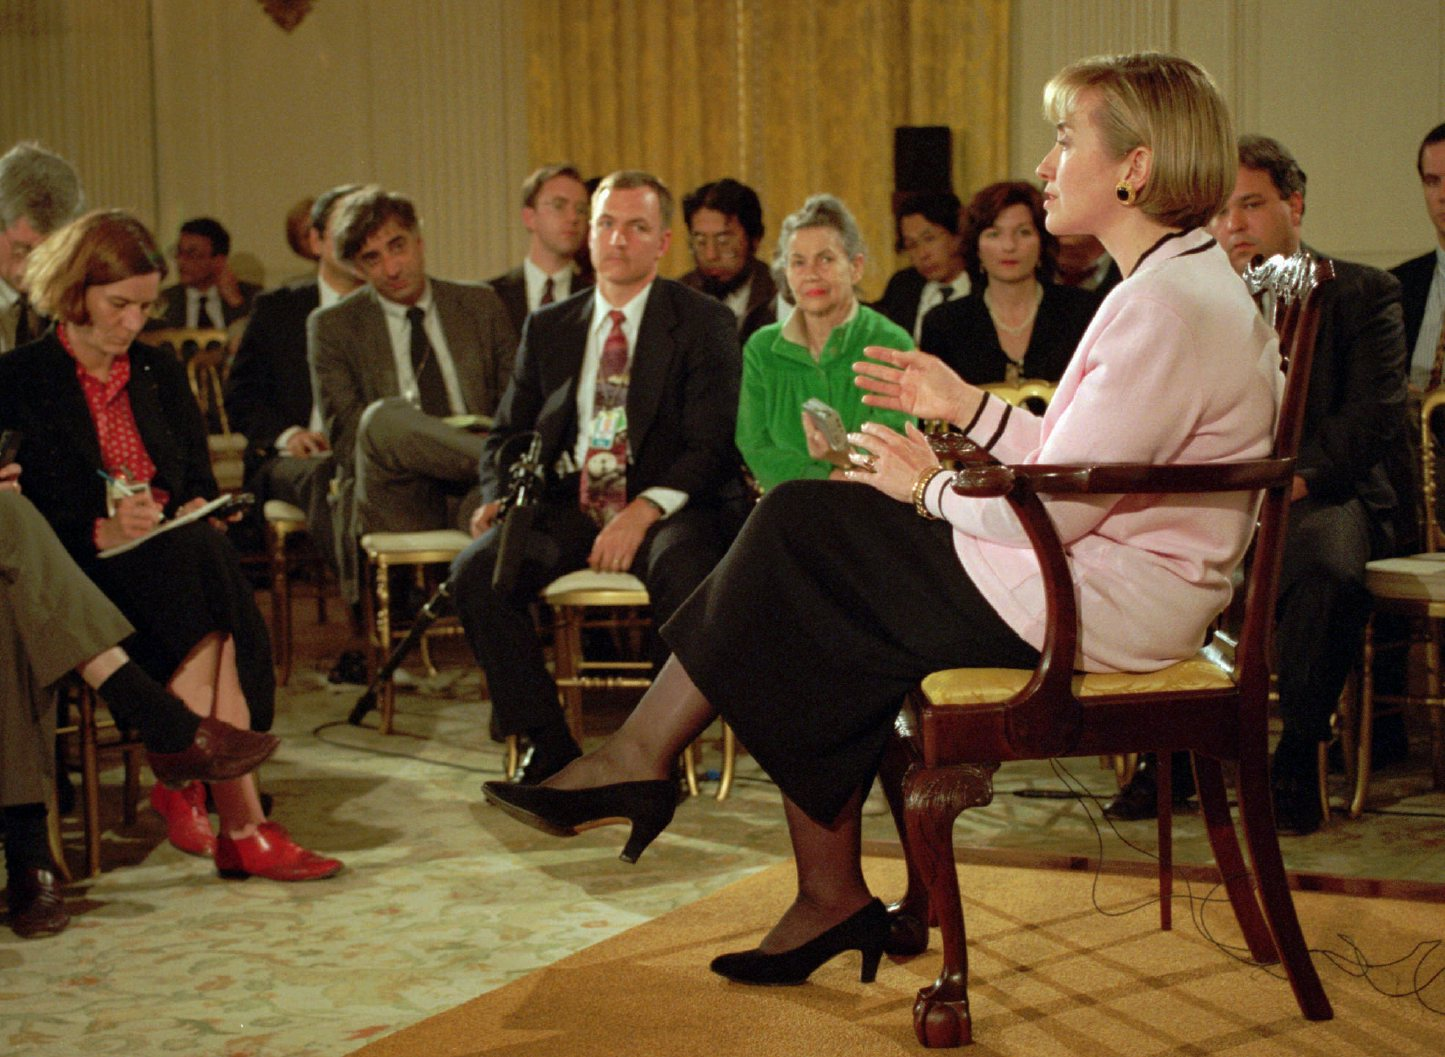 First lady Hillary Clinton gestures during a news conference in the White House Friday, April 22, 1994. (AP photo)